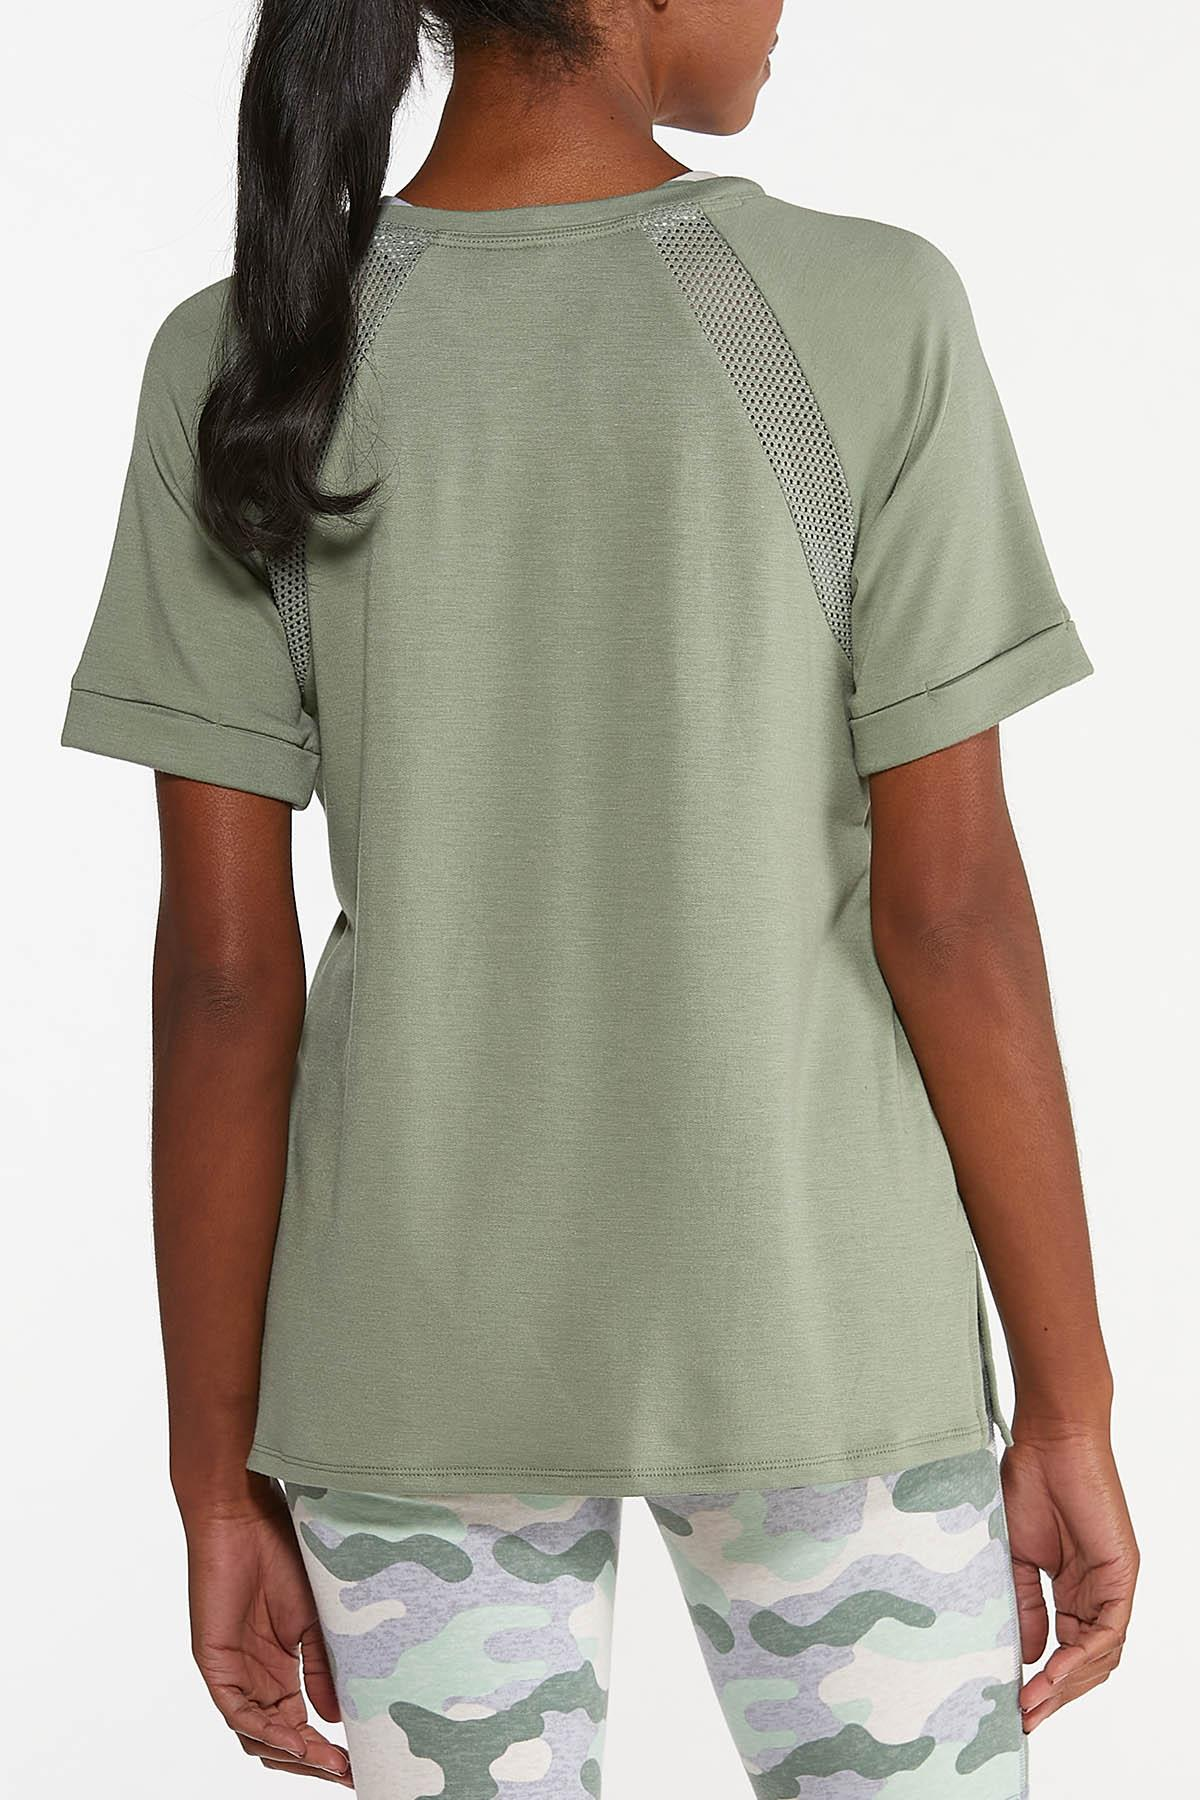 Plus Size Cuffed Sleeve Active Tee (Item #44633848)